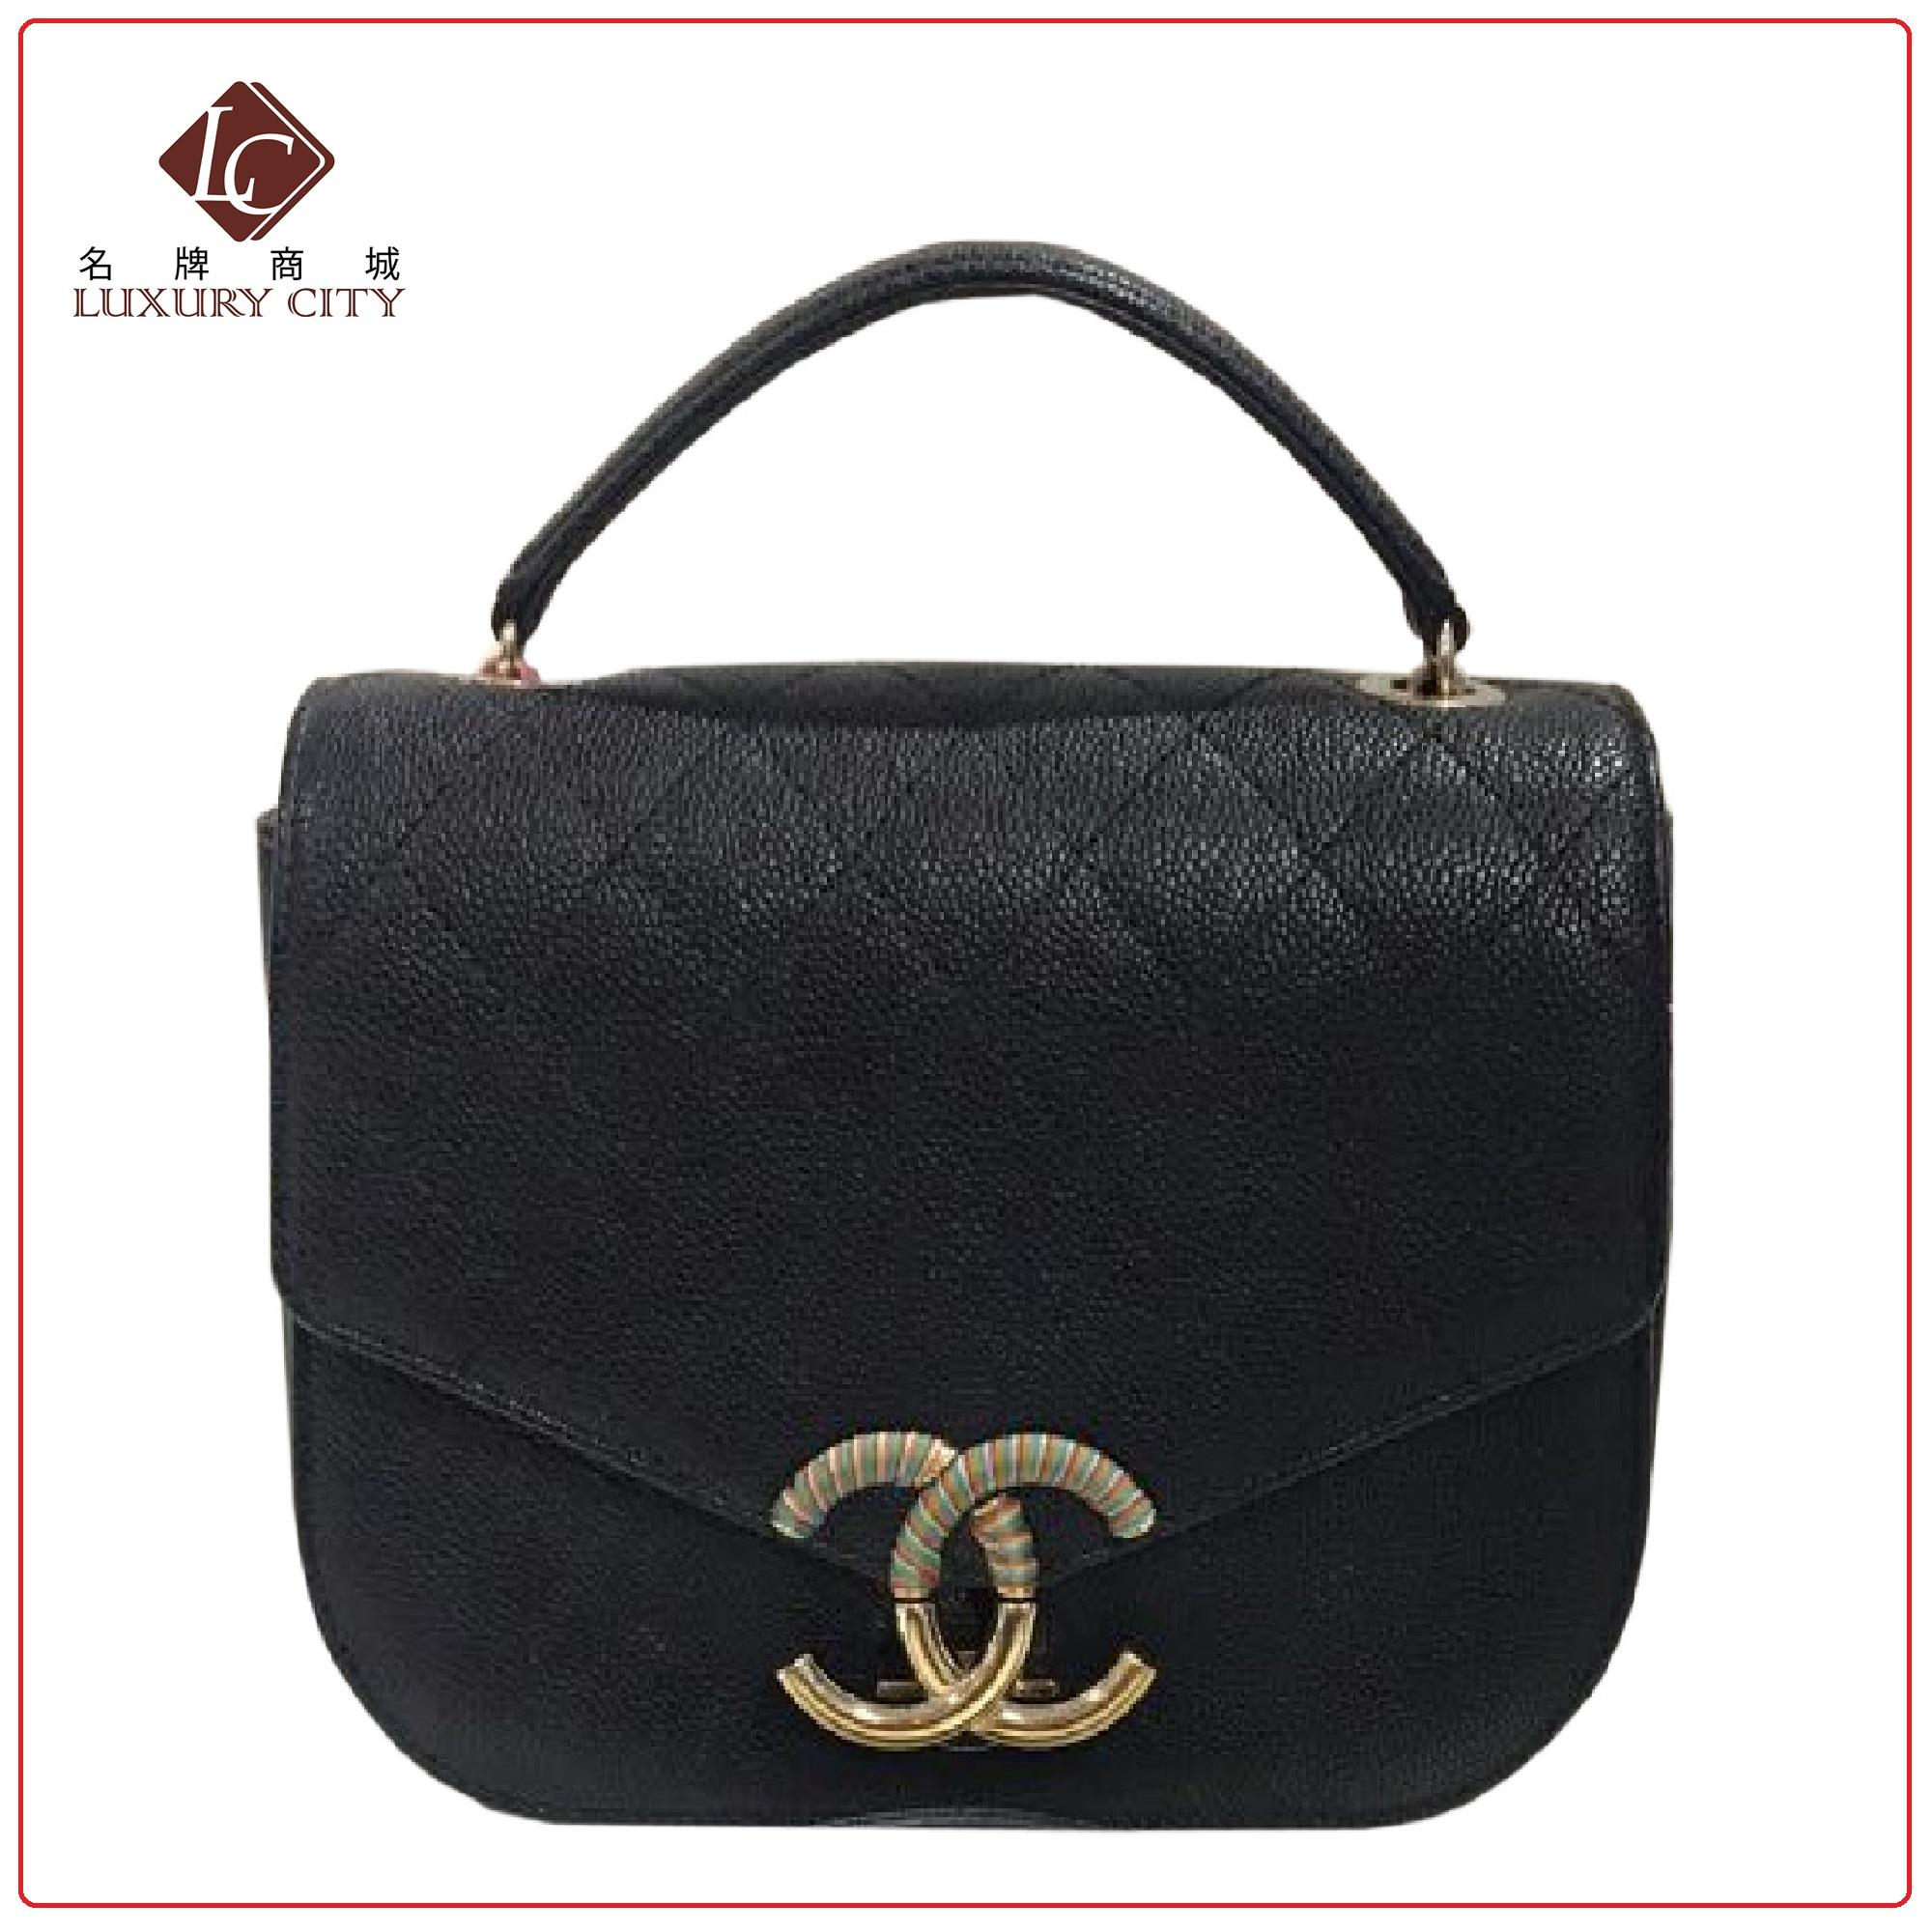 20e8ac0eb013 PRELOVED AUTHENTIC CHANEL SLING BAG